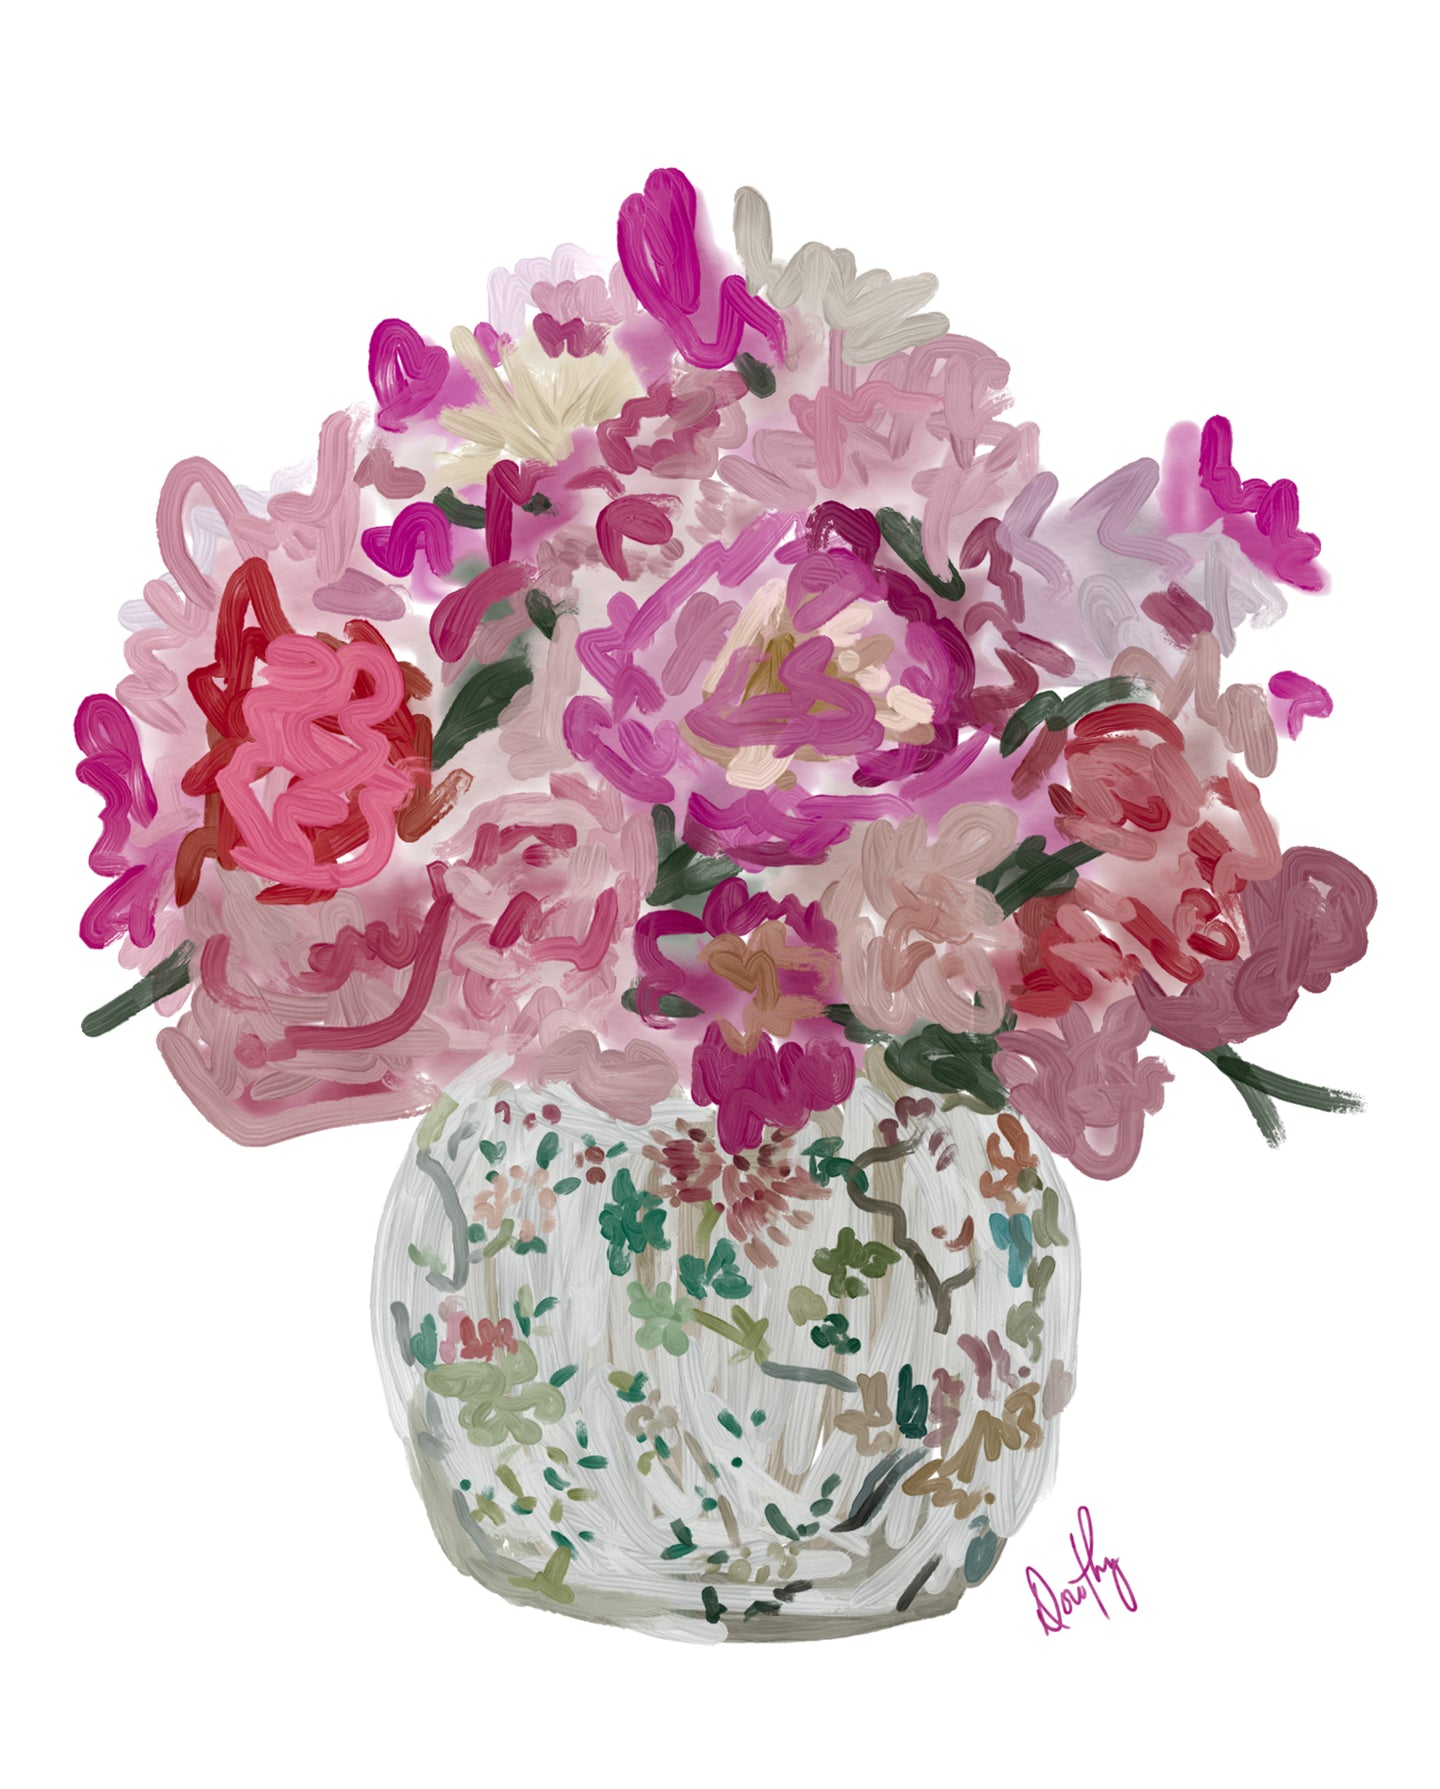 Chinoiserie Florals 2 - Dorothy Art